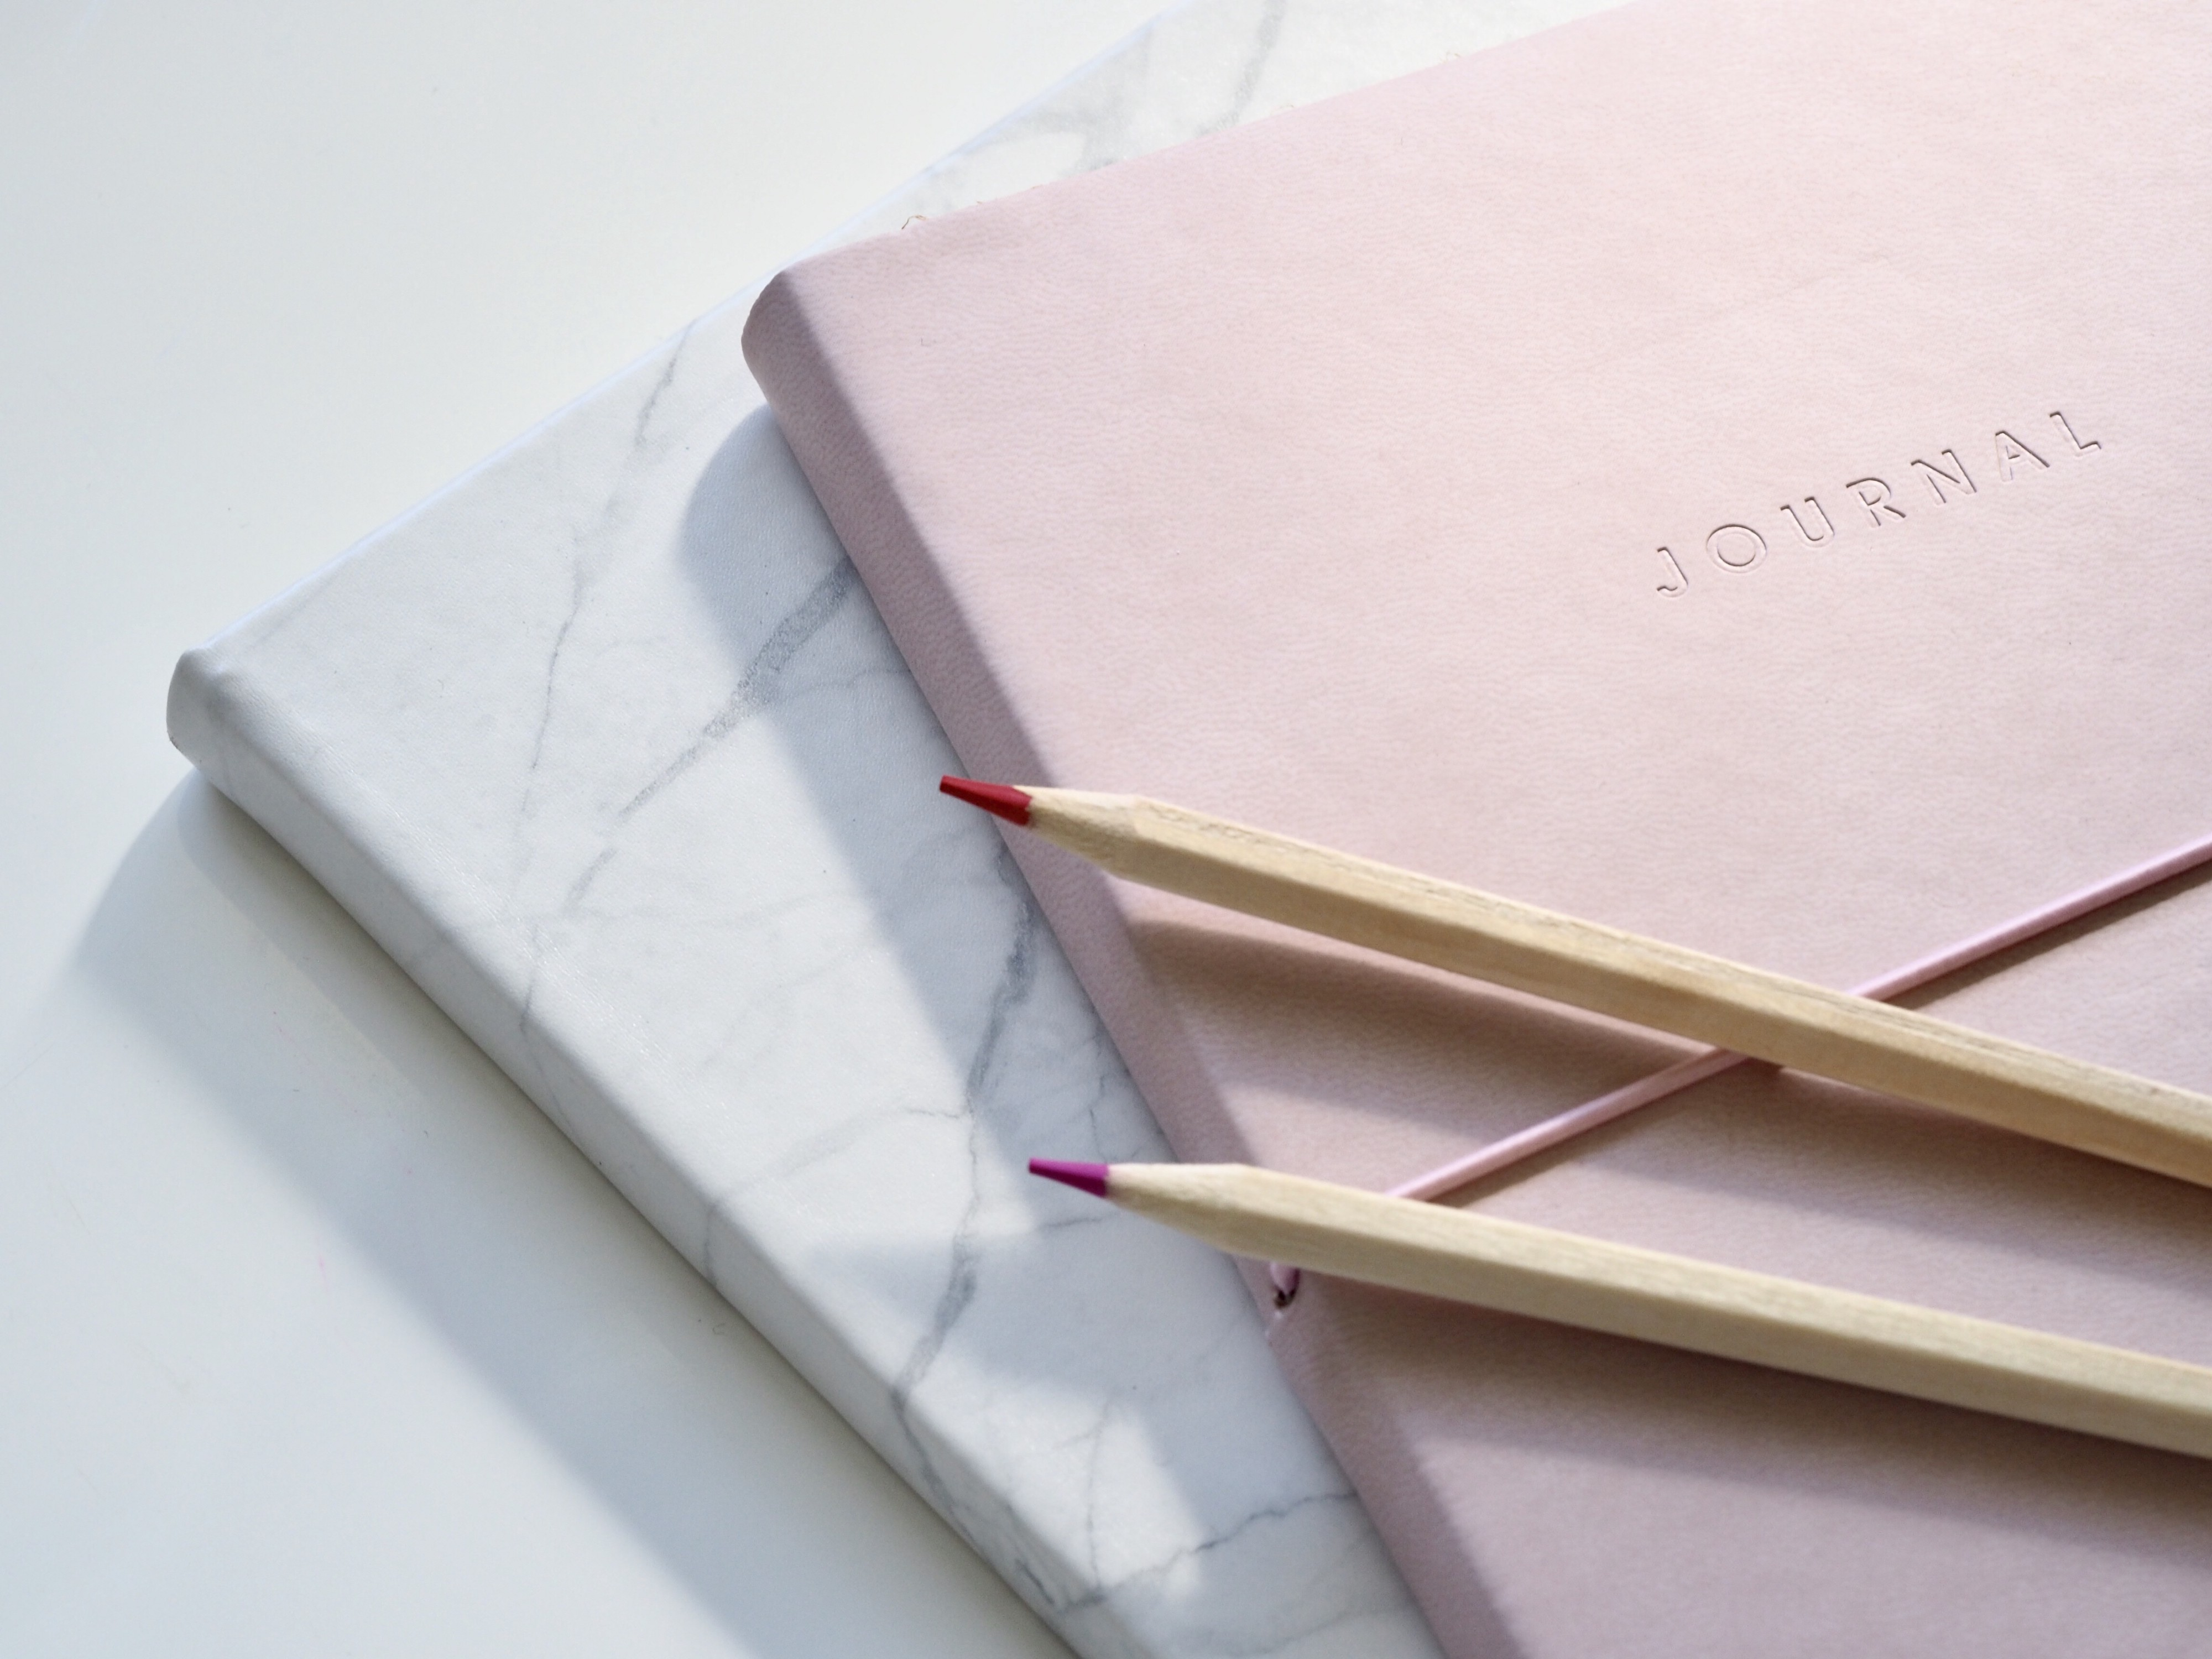 Journals and pencils on countertop